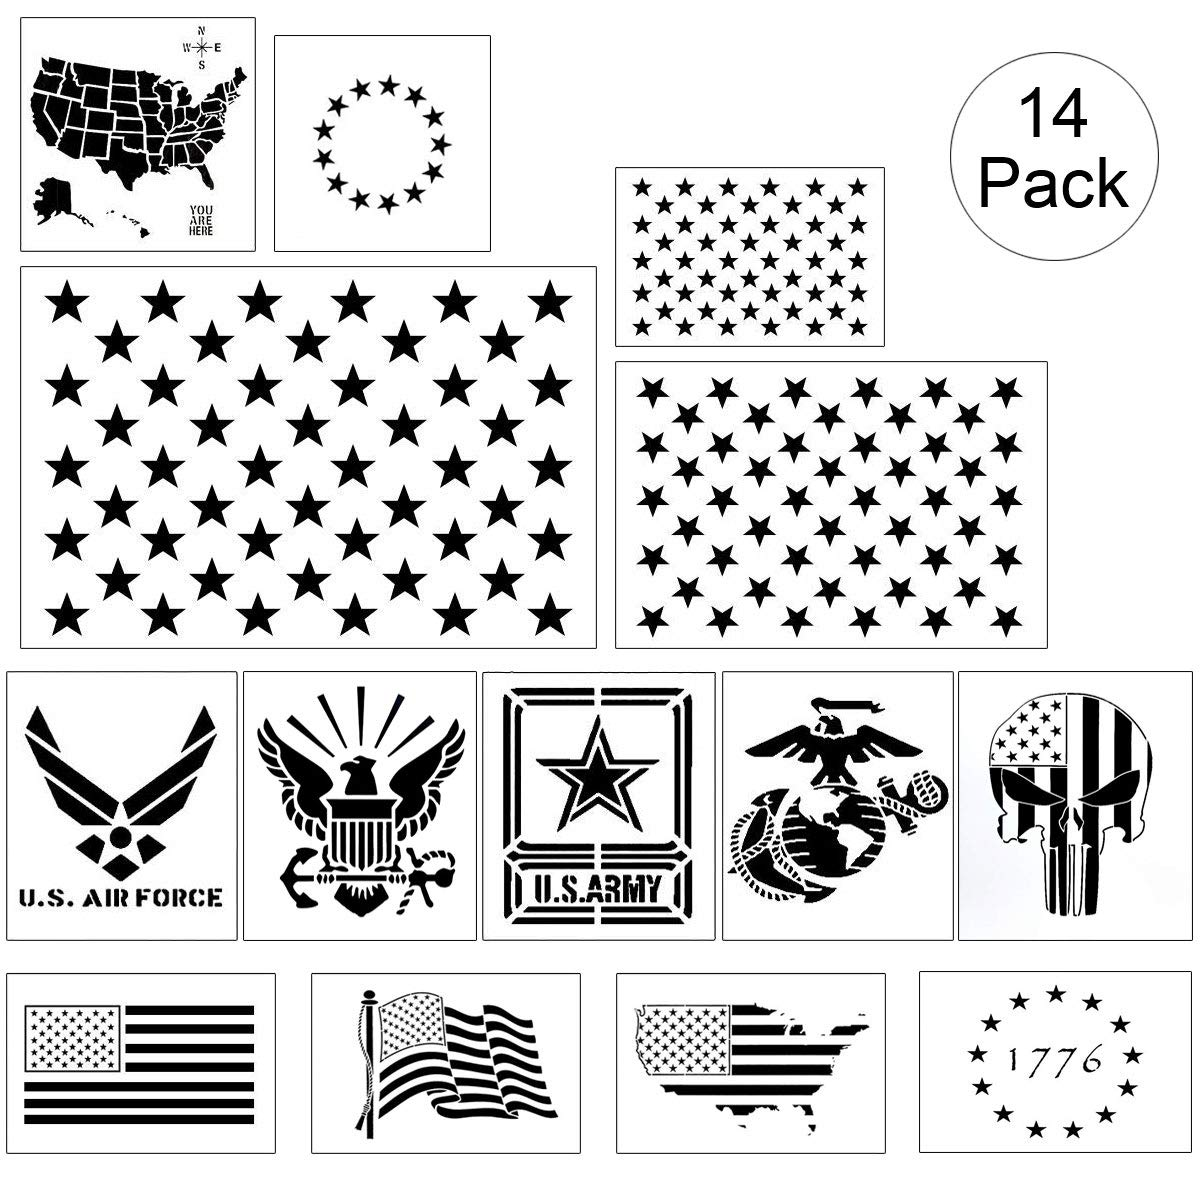 American Flag Stencil Templates - 14 Pack 50 Stars 13 Stars 1776 Punisher Skull Flag Map Navy Army Airforce Marines Stencils, Reusable Plastic Stencils for Painting on Wood & Wall by REOLAN